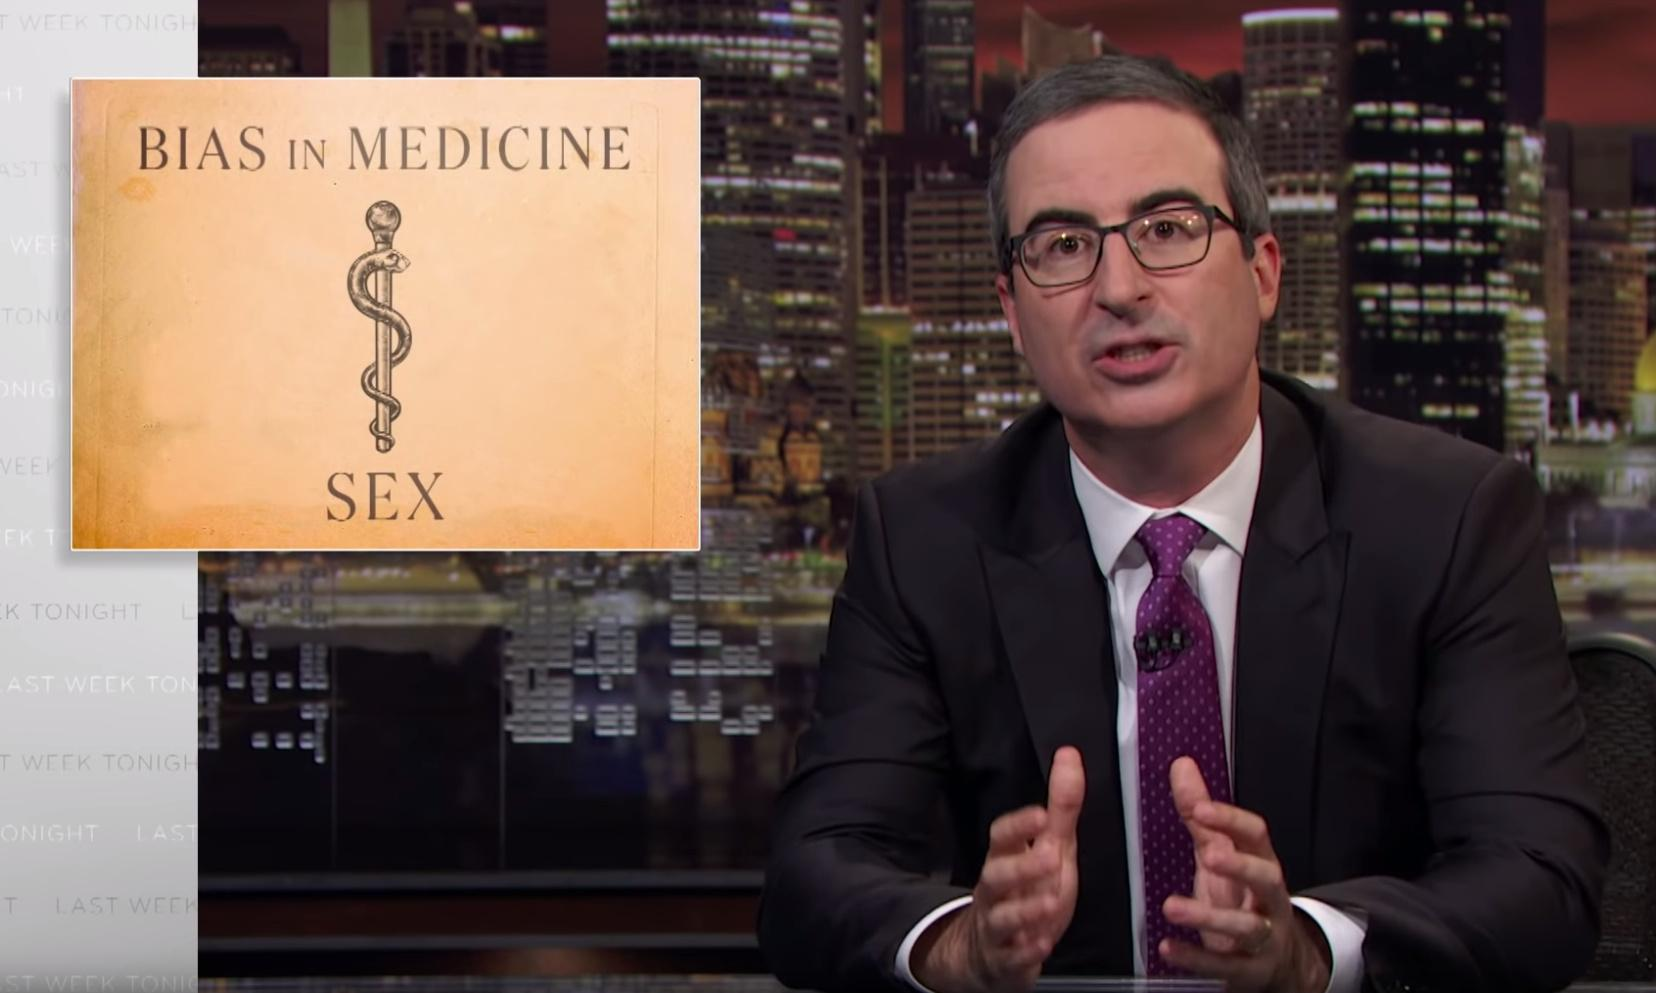 John Oliver: bias in medical care is a 'discussion that we need to have'